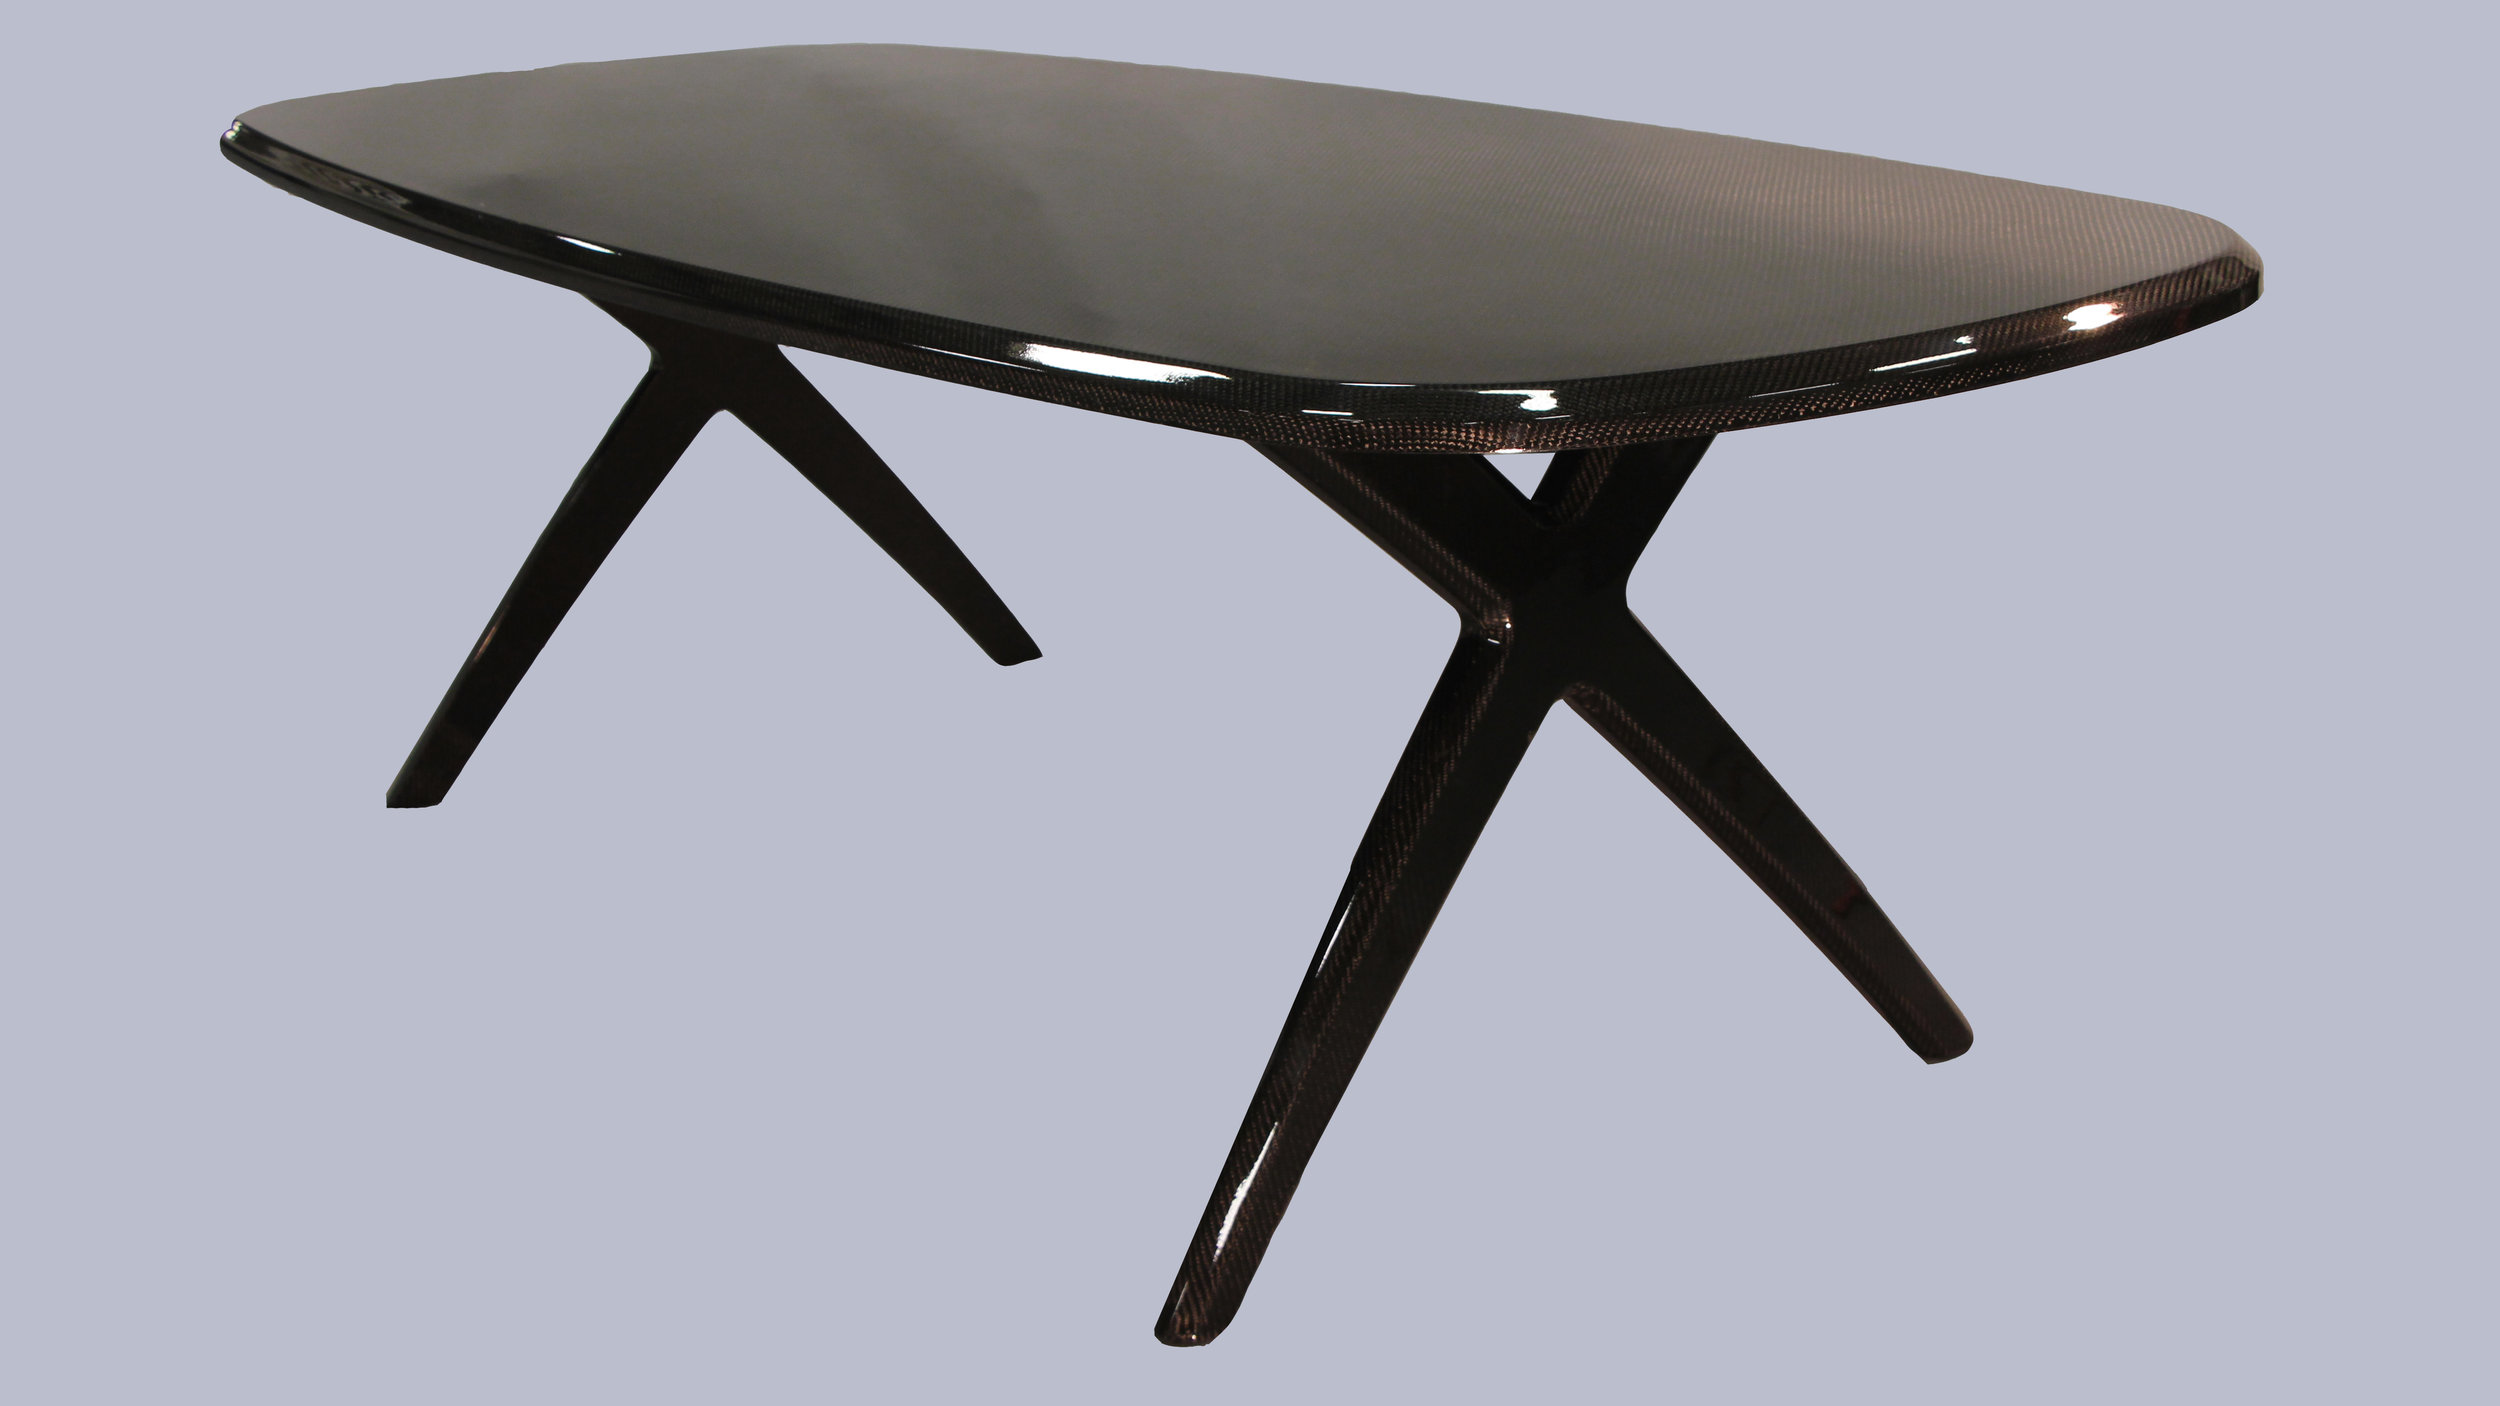 4.5' X 8' carbon table 2-18 008 5 664.jpg